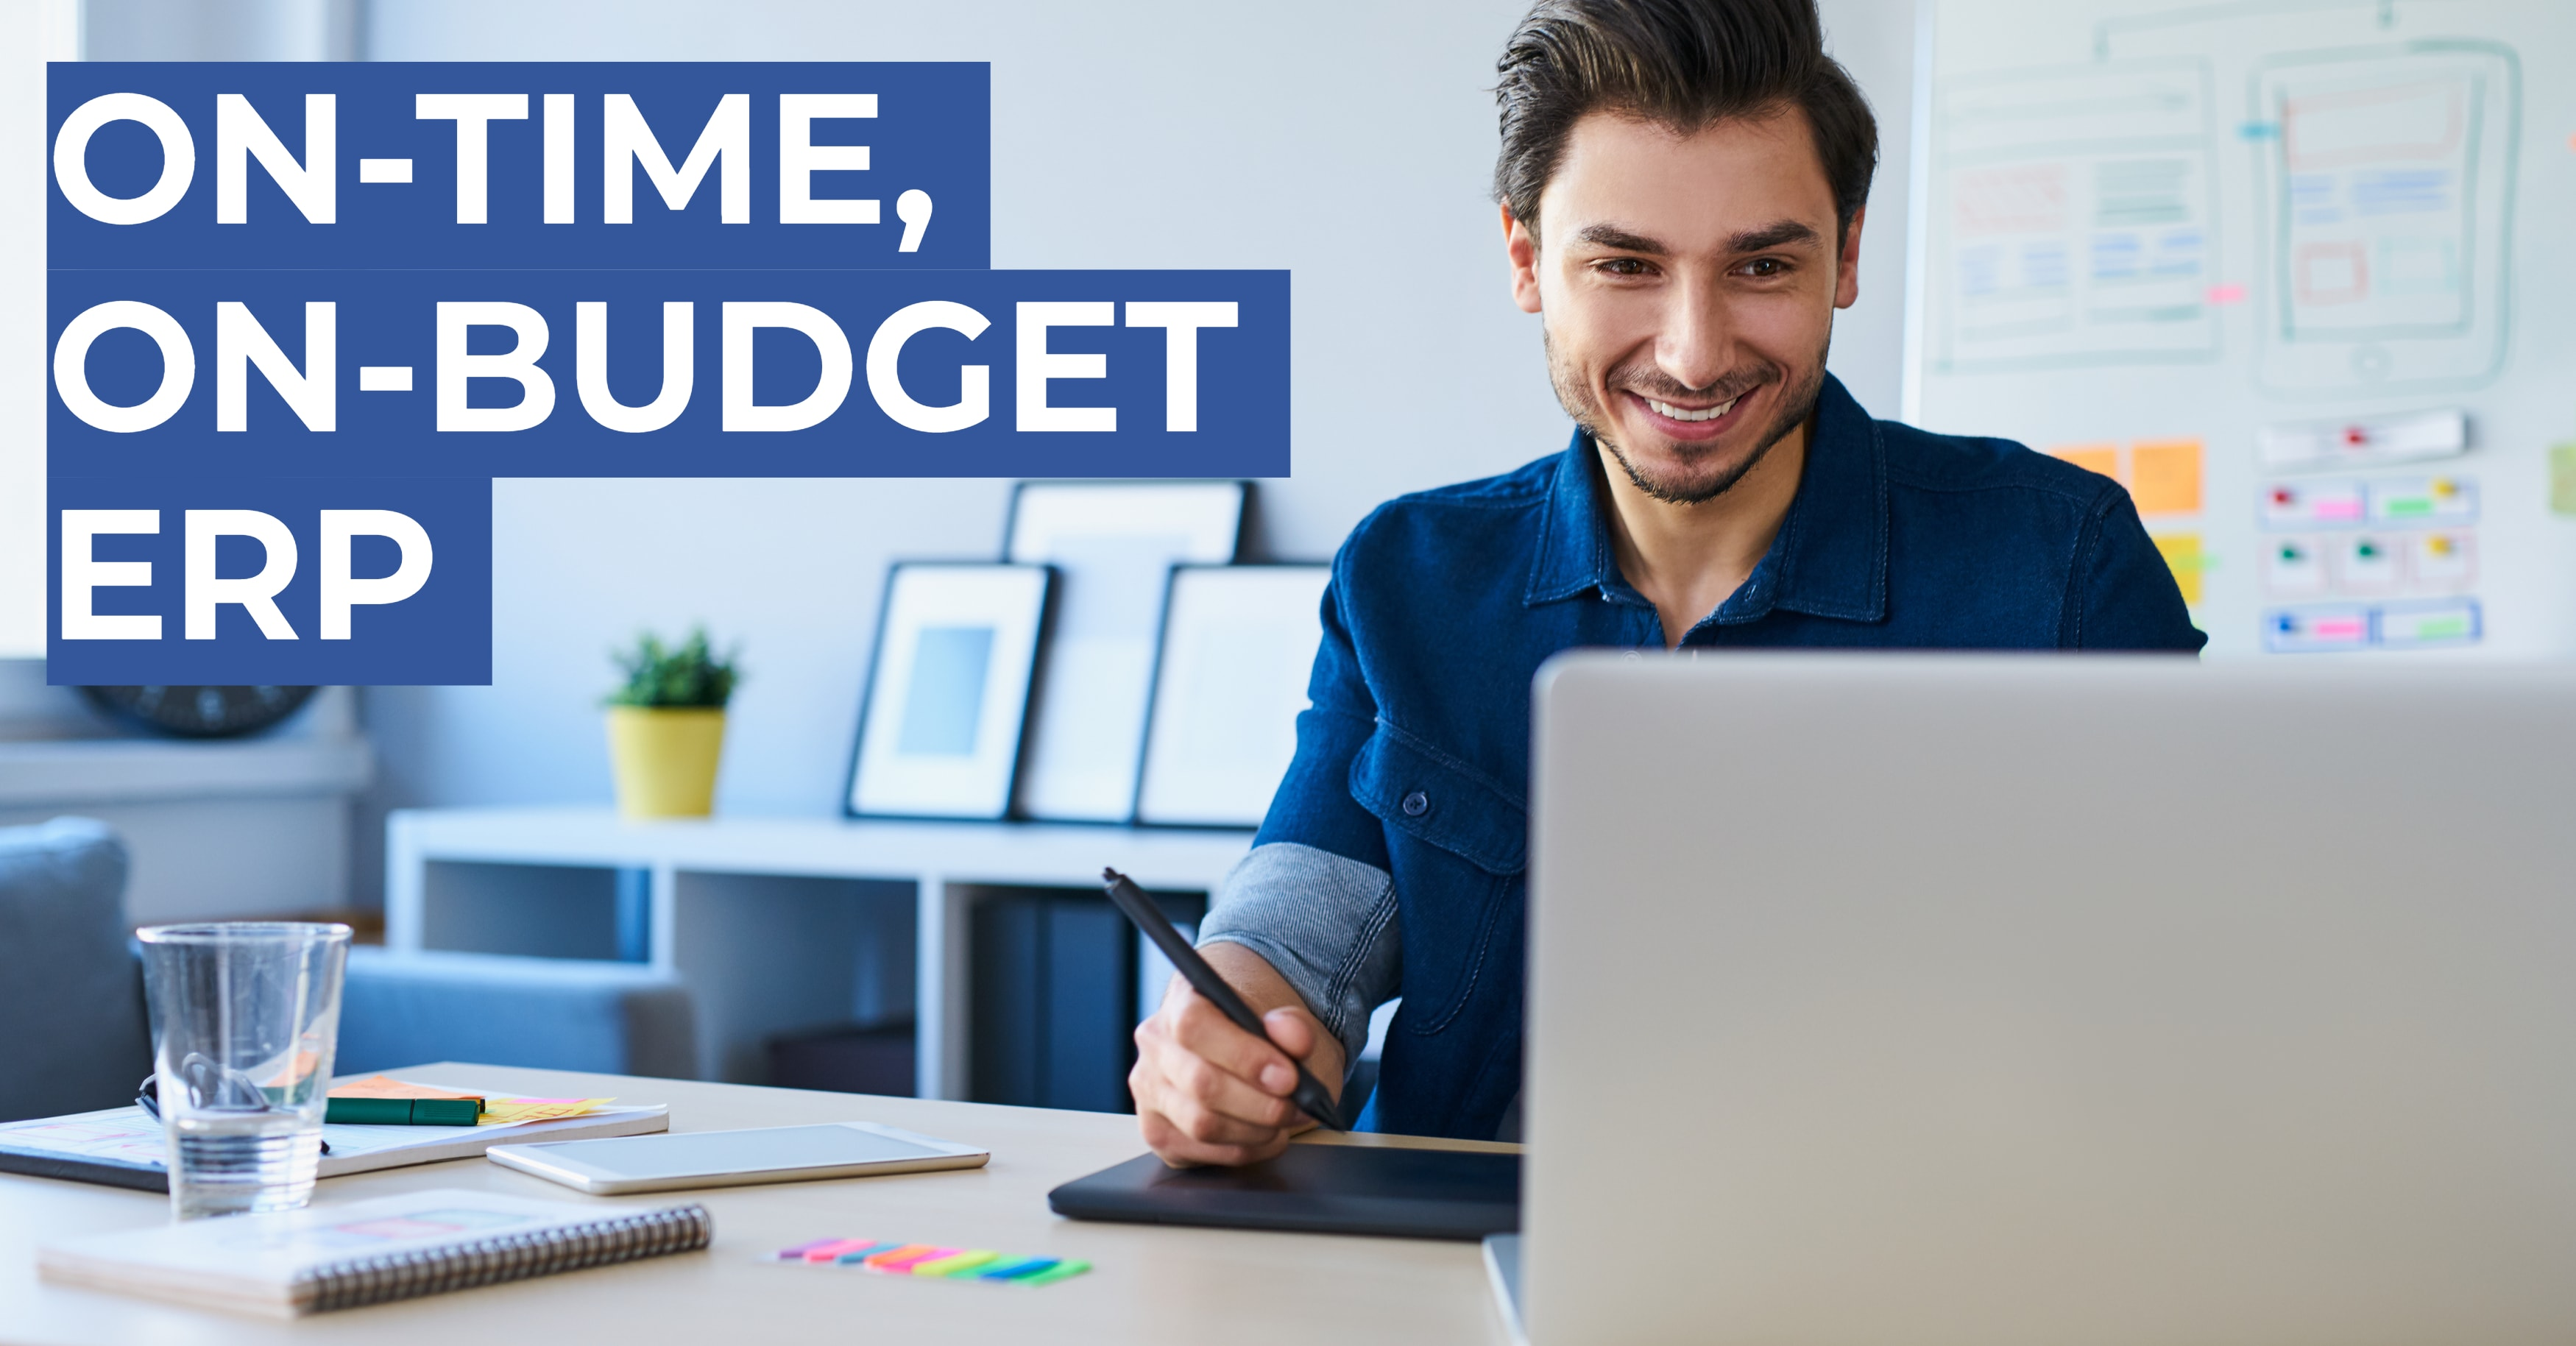 Can You Complete ERP Projects On Time and On Budget?